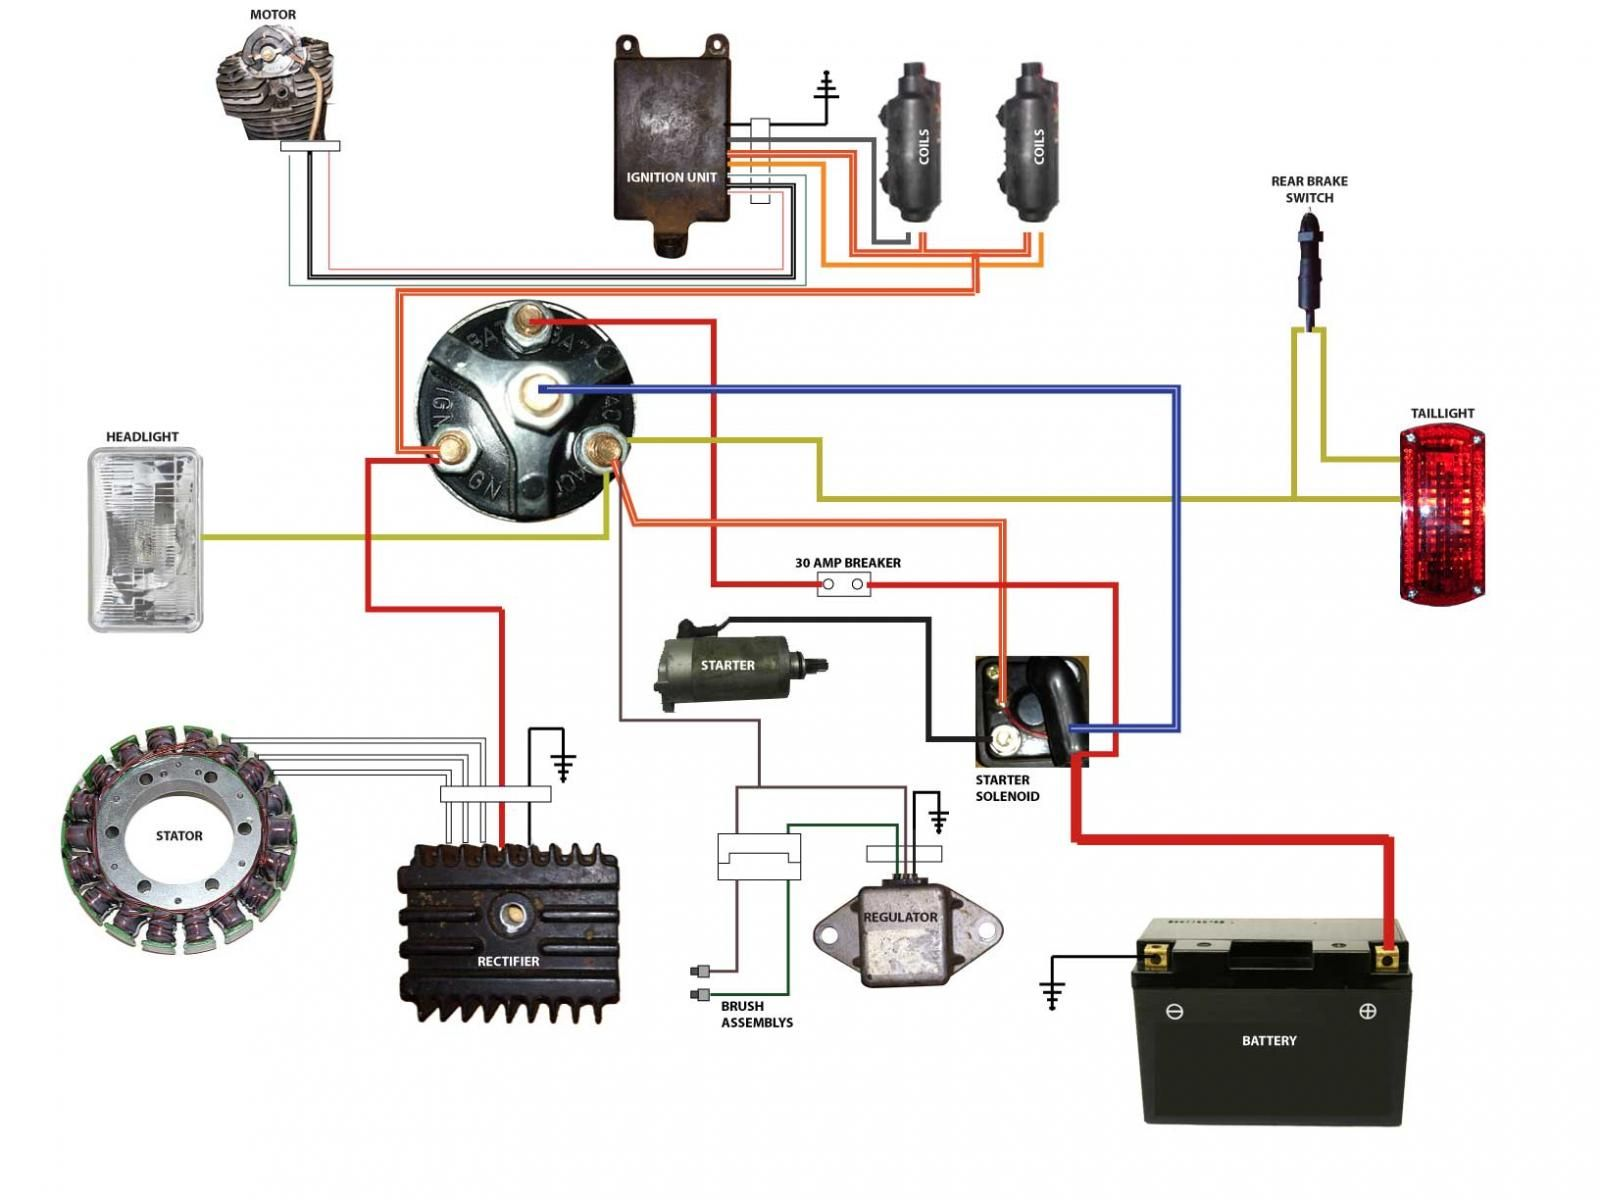 simplified wiring diagram for xs400 cafe | Projects to Try ... on boyer ignition wiring diagram, triumph chopper wiring diagram, chinese chopper wiring diagram, basic wiring diagrams garage, harley chopper wiring diagram, basic chopper wiring, shovelhead chopper wiring diagram, simple chopper wiring diagram, simplified motorcycle wiring diagram, 110cc chopper wiring diagram,